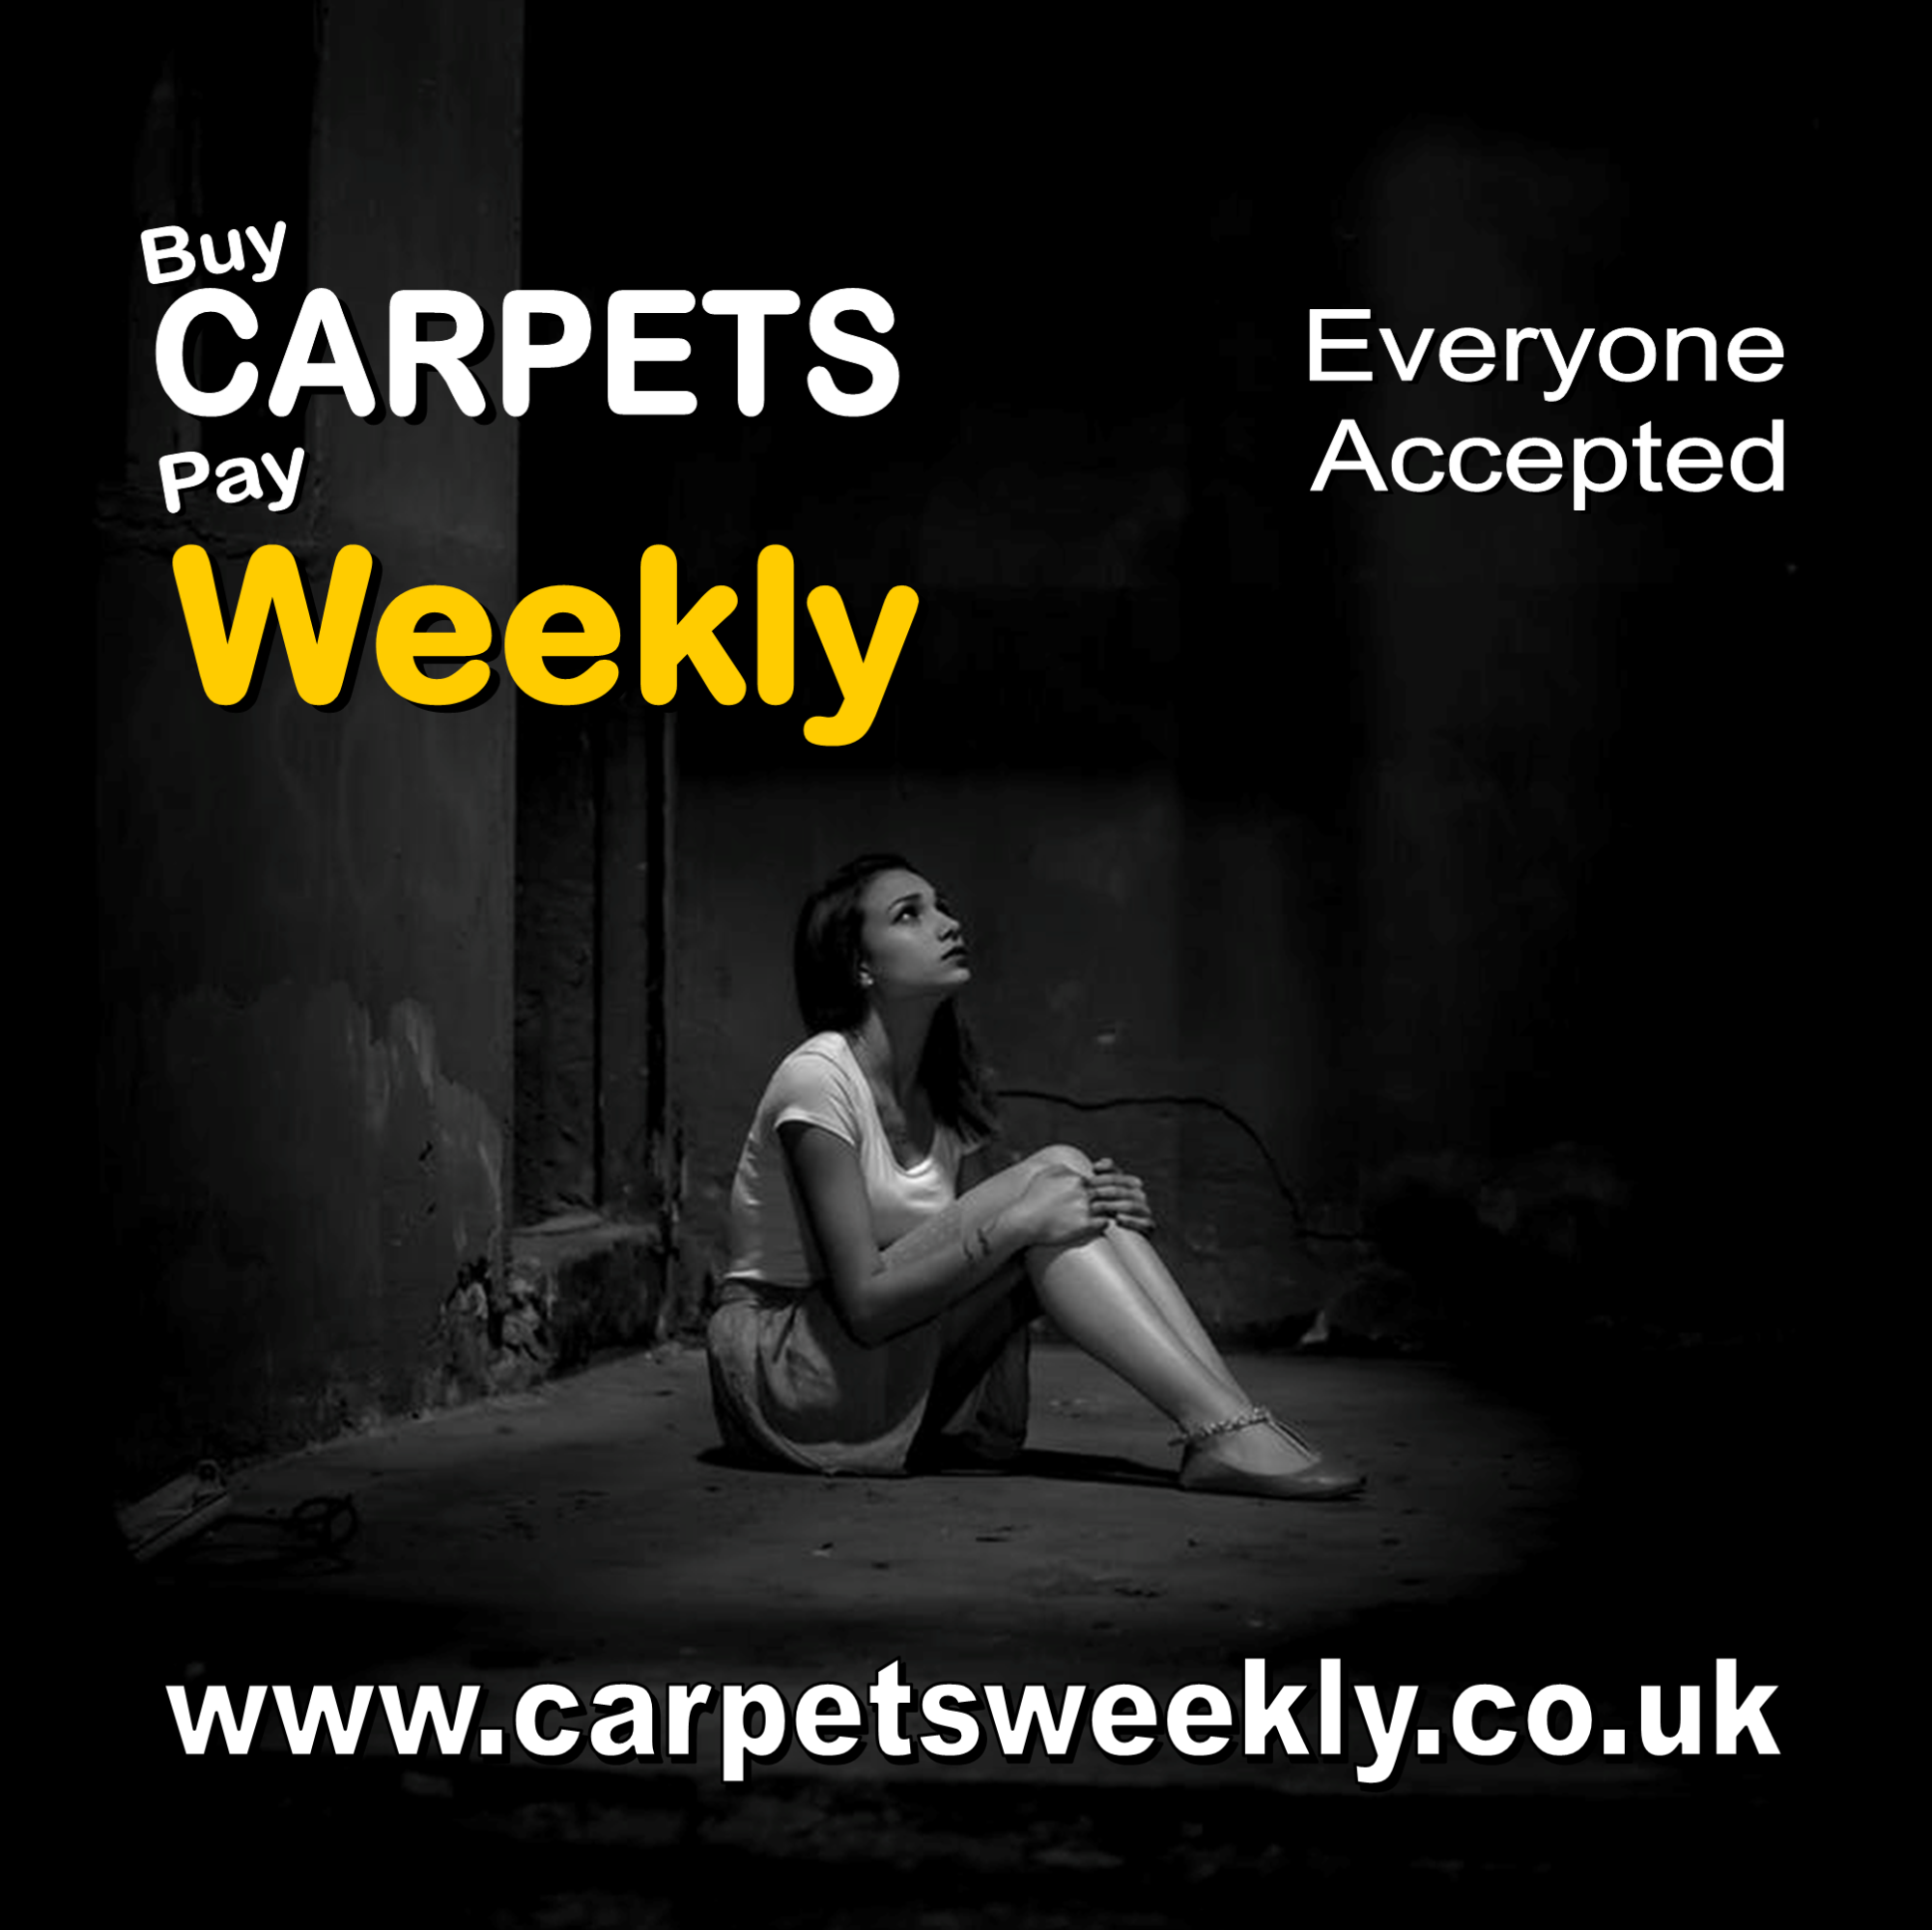 With Carpets Weekly, everyone is accepted